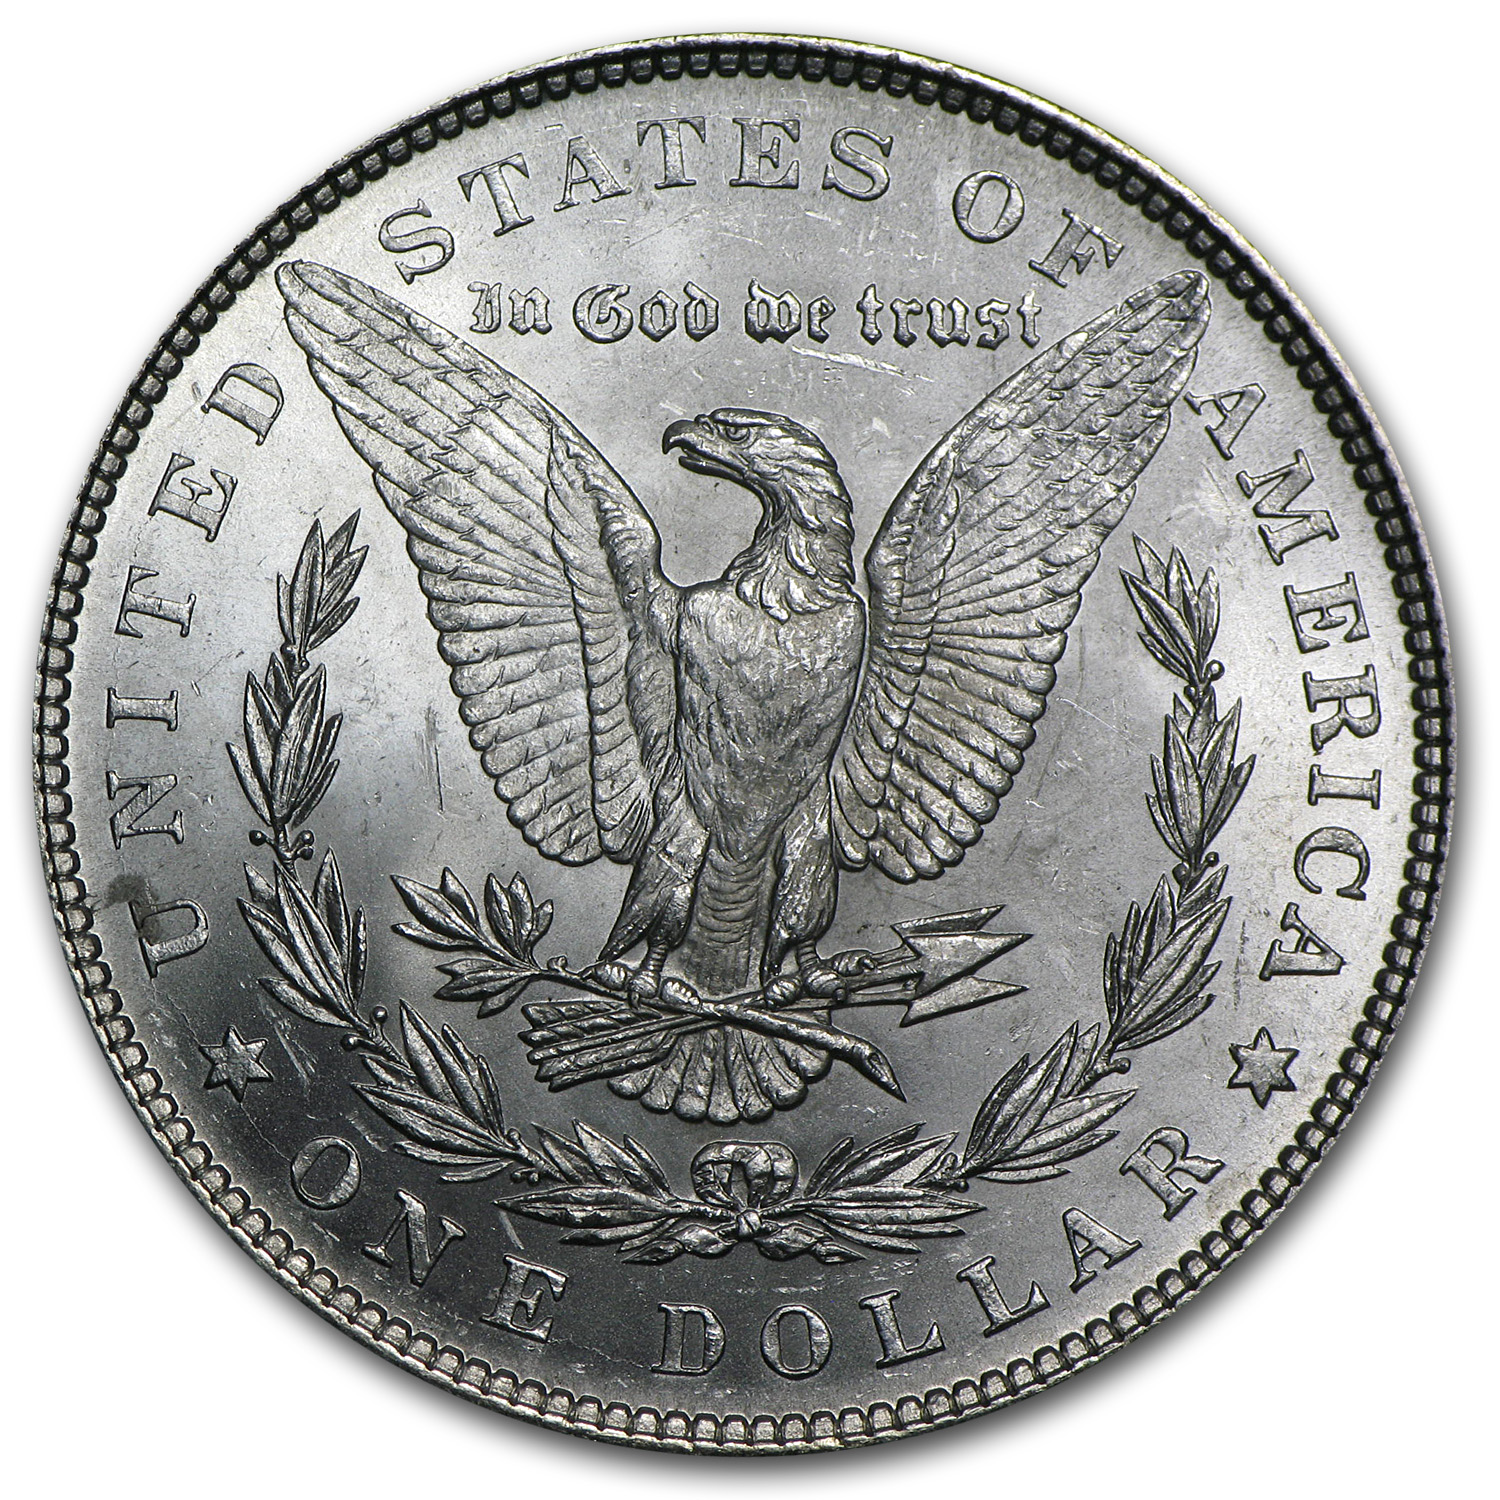 1878 Morgan Dollar 7 Tailfeathers Rev of 79 BU